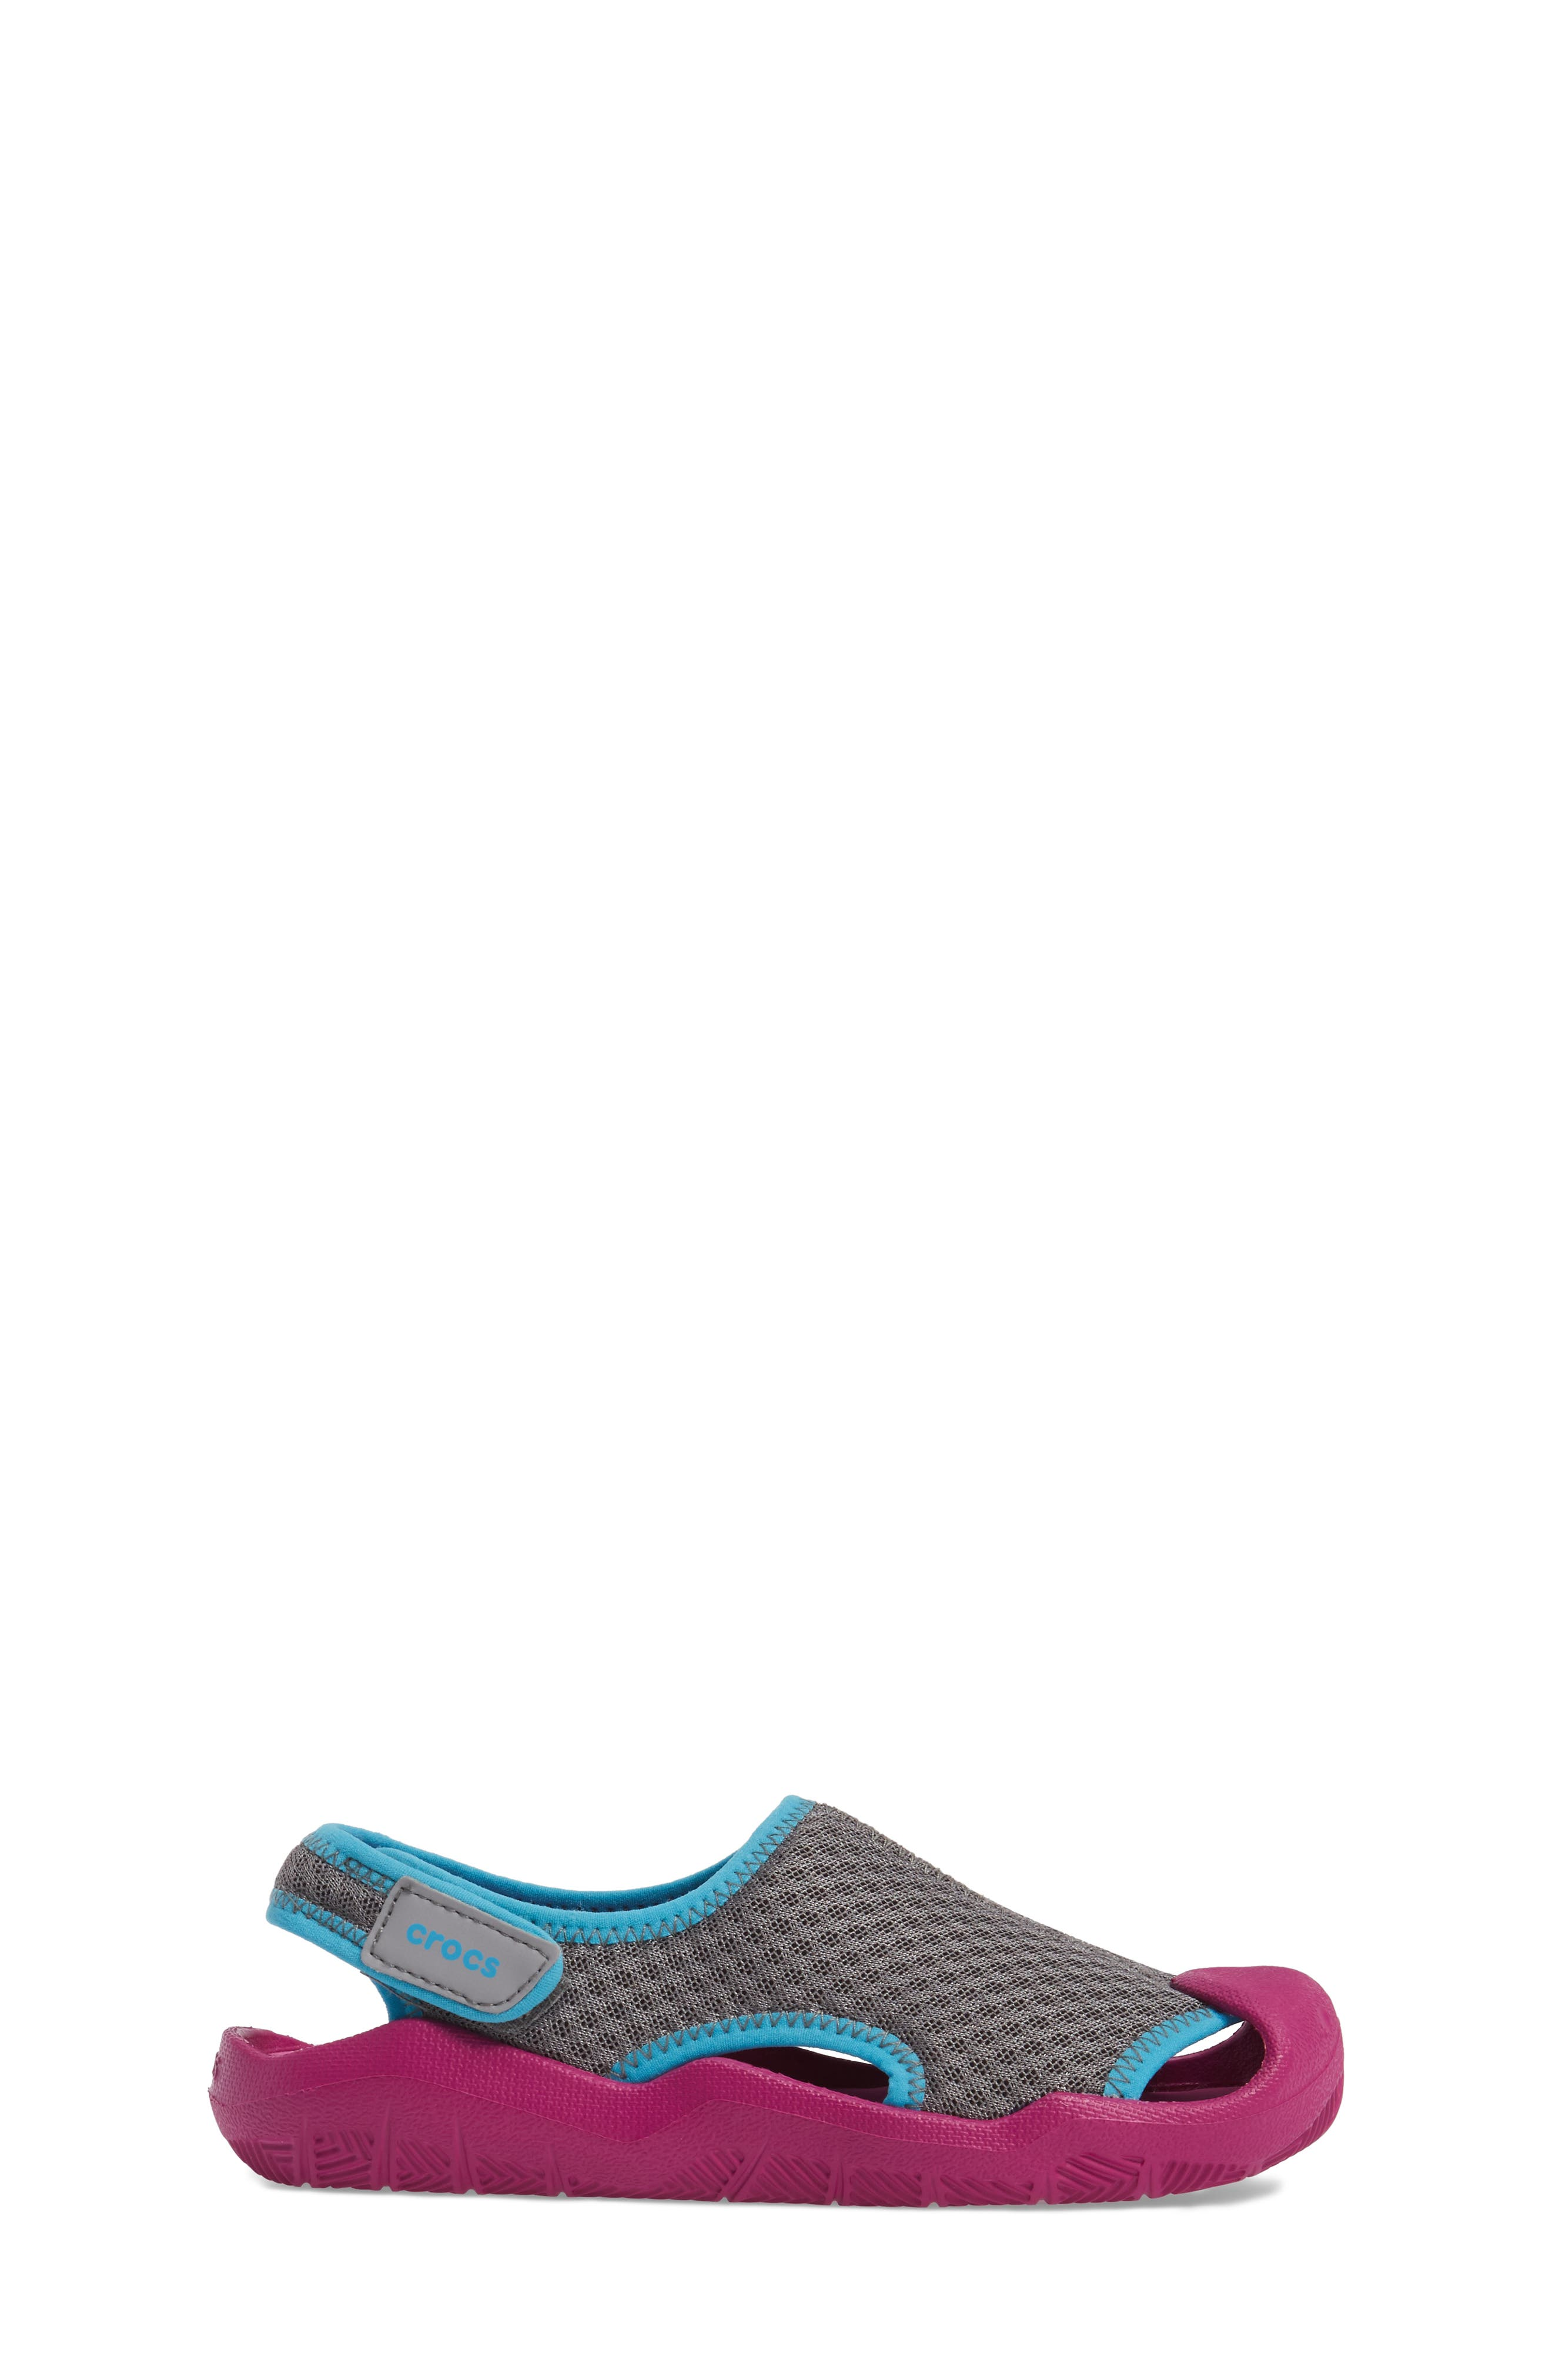 Swiftwater Sandal,                             Alternate thumbnail 3, color,                             057